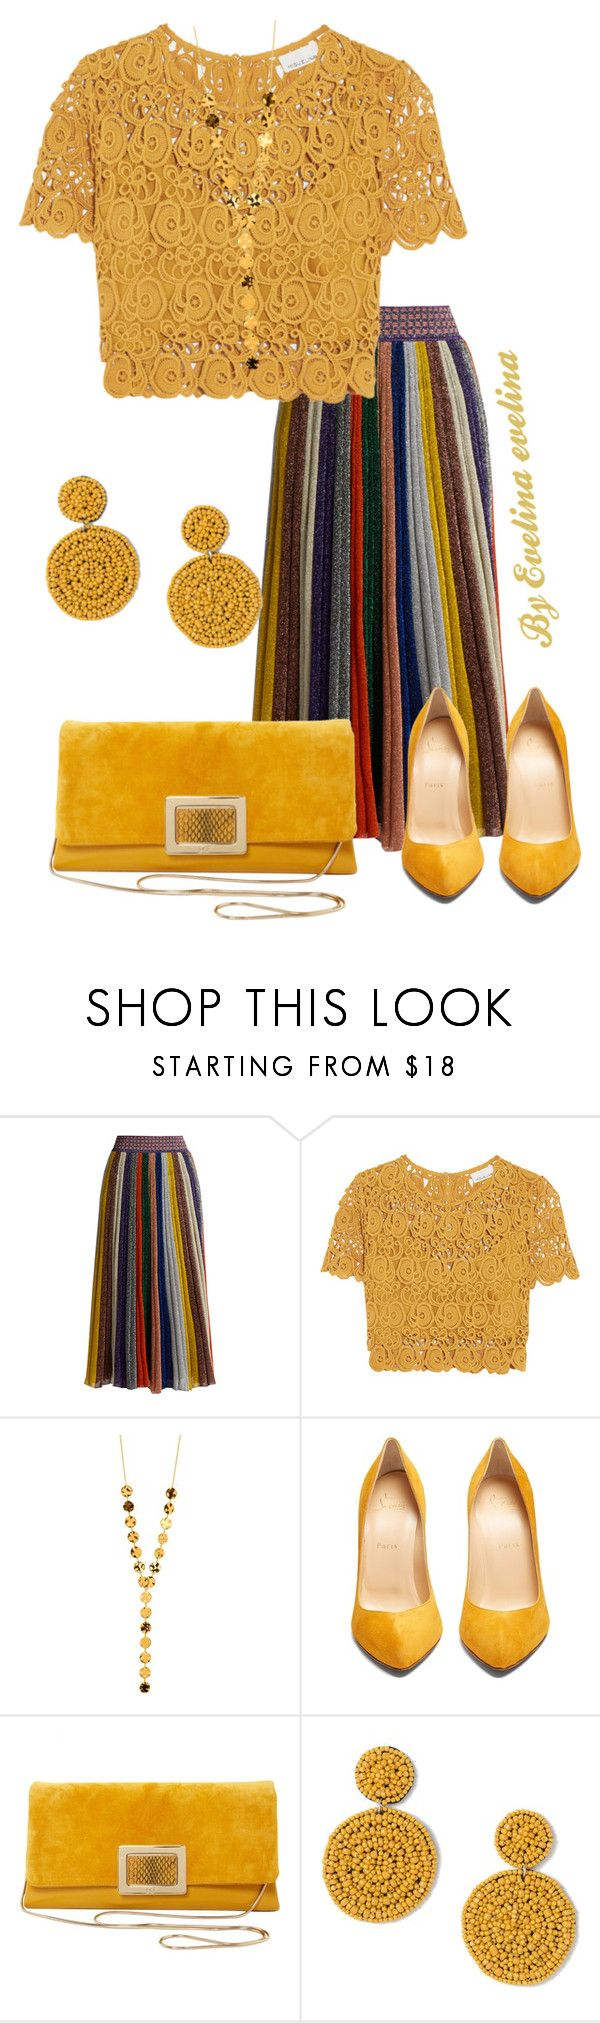 """EVE"" by evelina-er ❤ liked on Polyvore featuring Missoni, Miguelina, Gorjana, Christian Louboutin, Roger Vivier and Miss Selfridge"